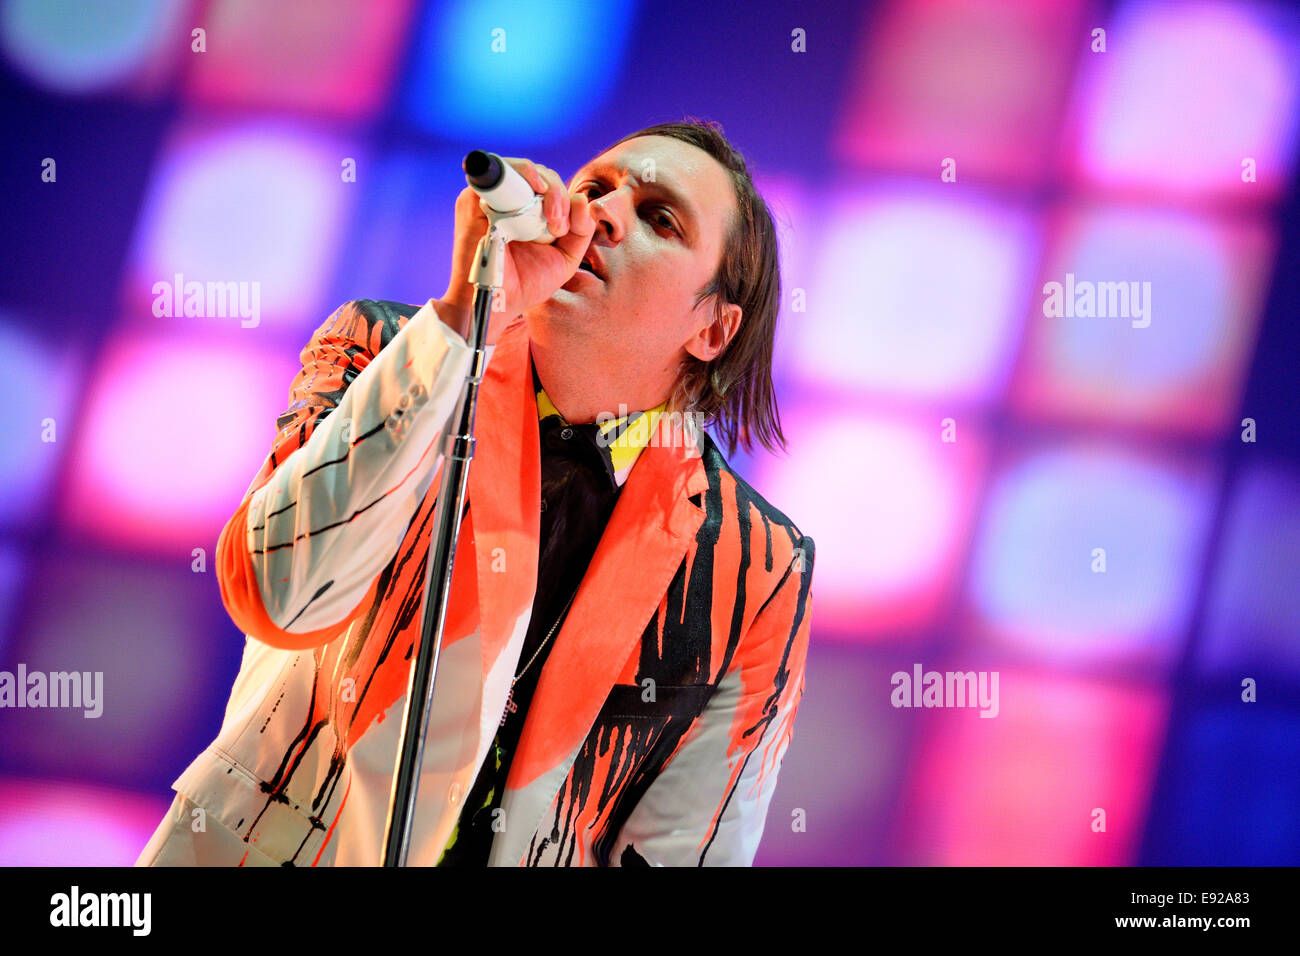 BARCELONA - MAY 29: Arcade Fire (indie rock band based in Montreal, Quebec, Canada) performs at Heineken Primavera - Stock Image